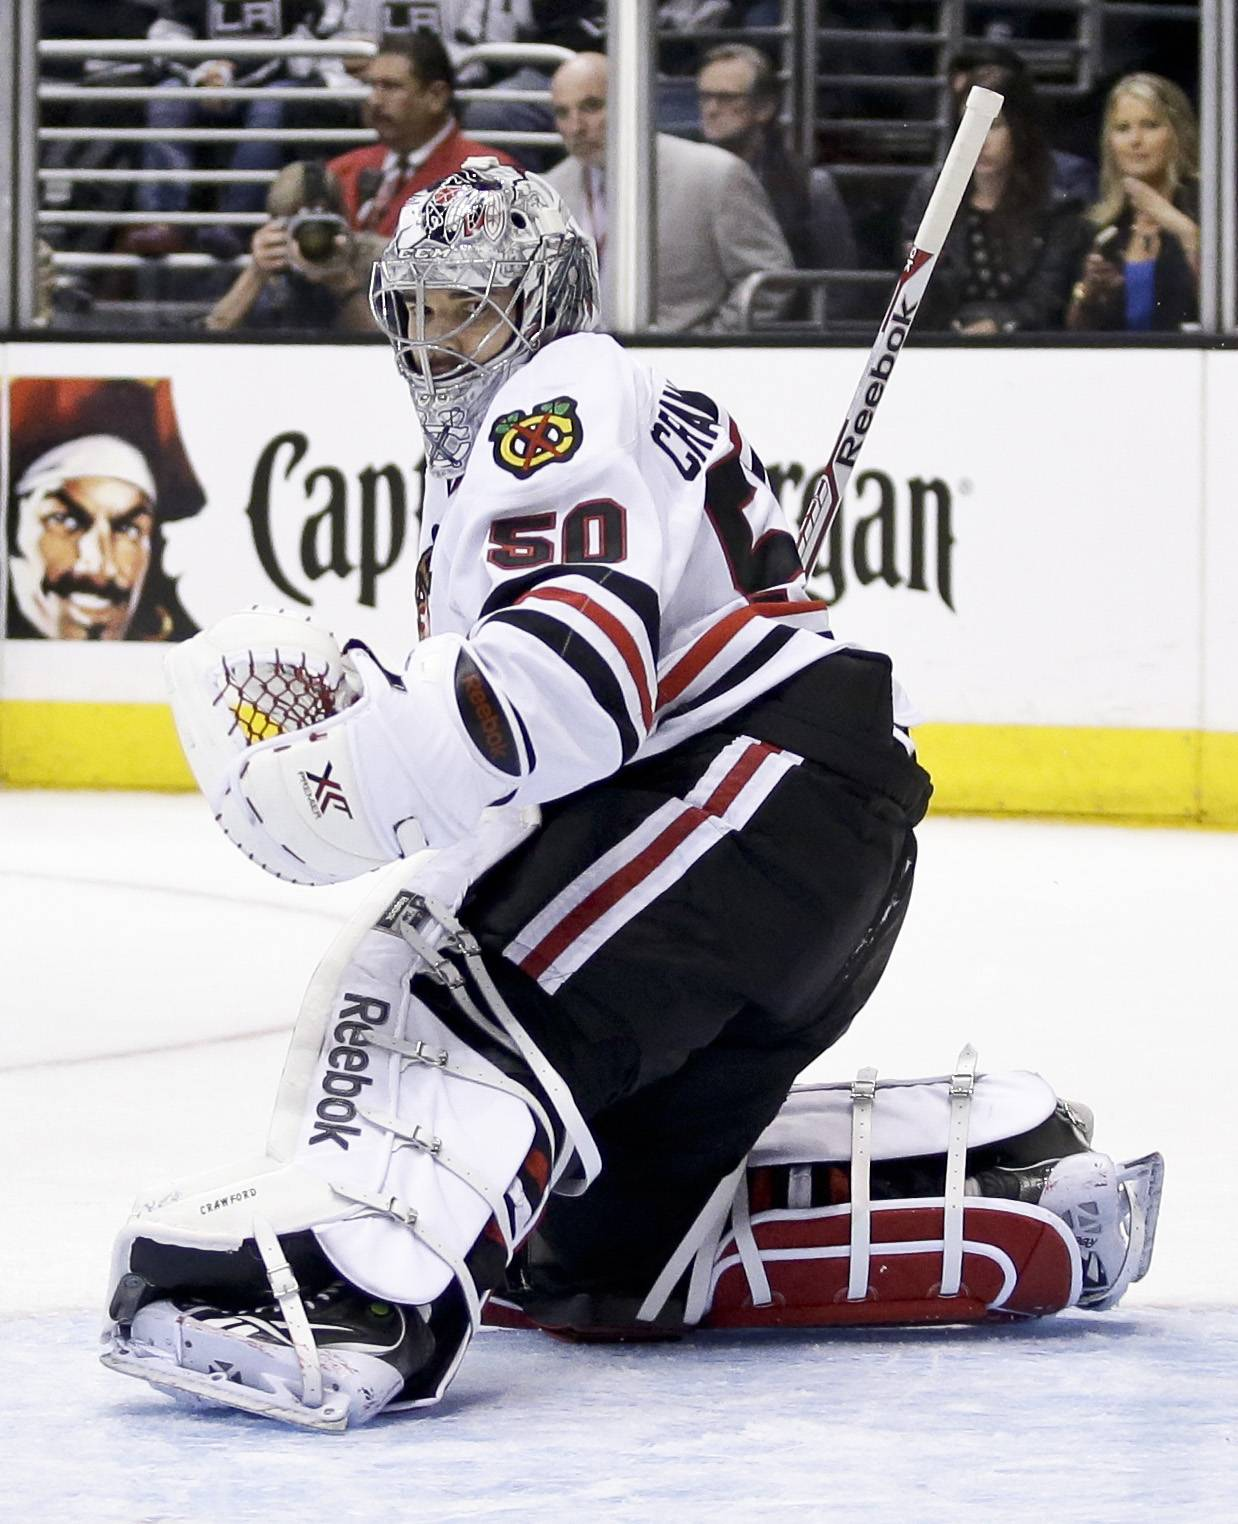 Blackhawks goalie Corey Crawford blocks a shot against the Kings during Game 6 of the Western Conference finals Friday night.